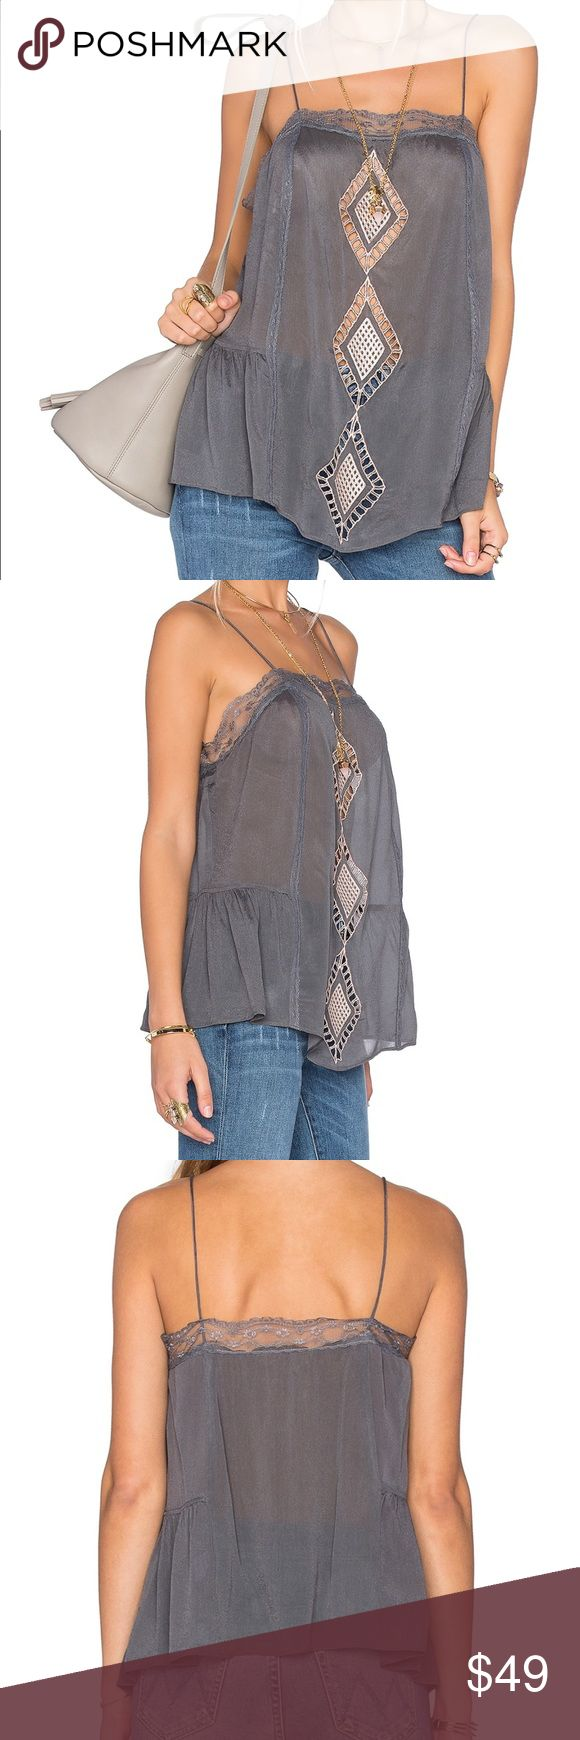 NWOT TULAROSA Marni Diamond Front Cami Size XS TULAROSA Marni Diamond Front Cami Size XS 100% viscose Hand wash cold Front embroidered eyelet detail Lace trim accents Manufacturer Style No. RV15F087 TR COLOR  Charcoal Tularosa Tops Camisoles